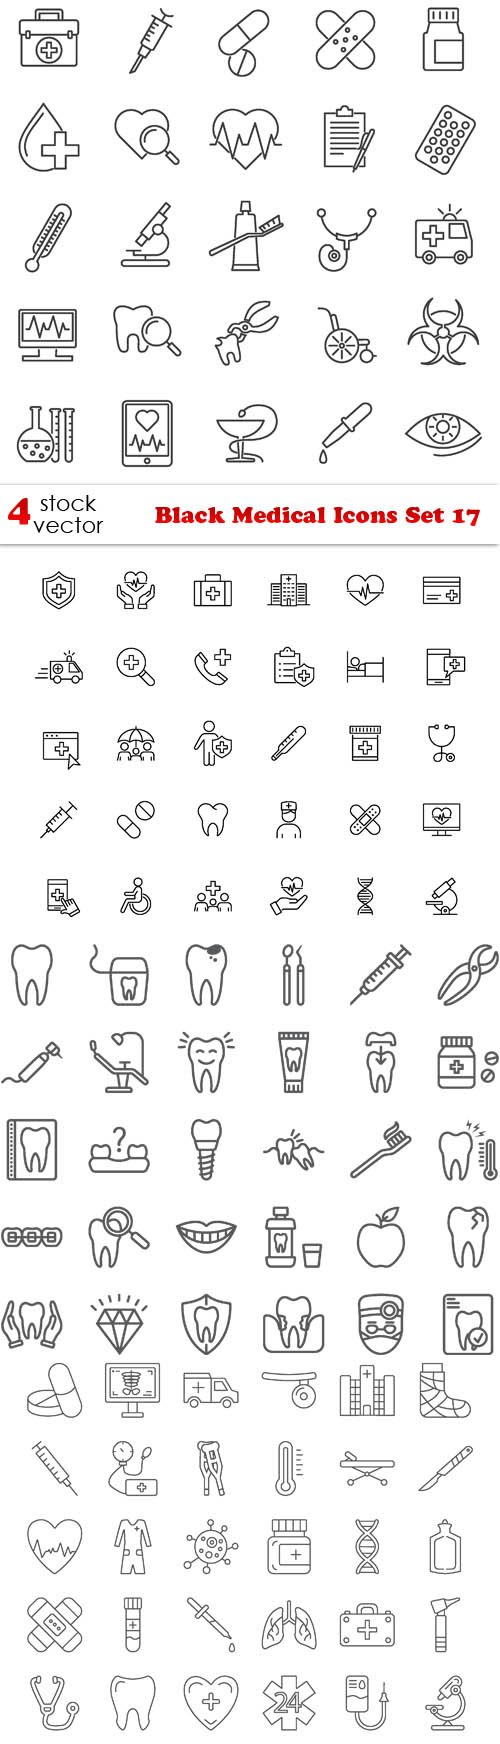 Vectors - Black Medical Icons Set 17